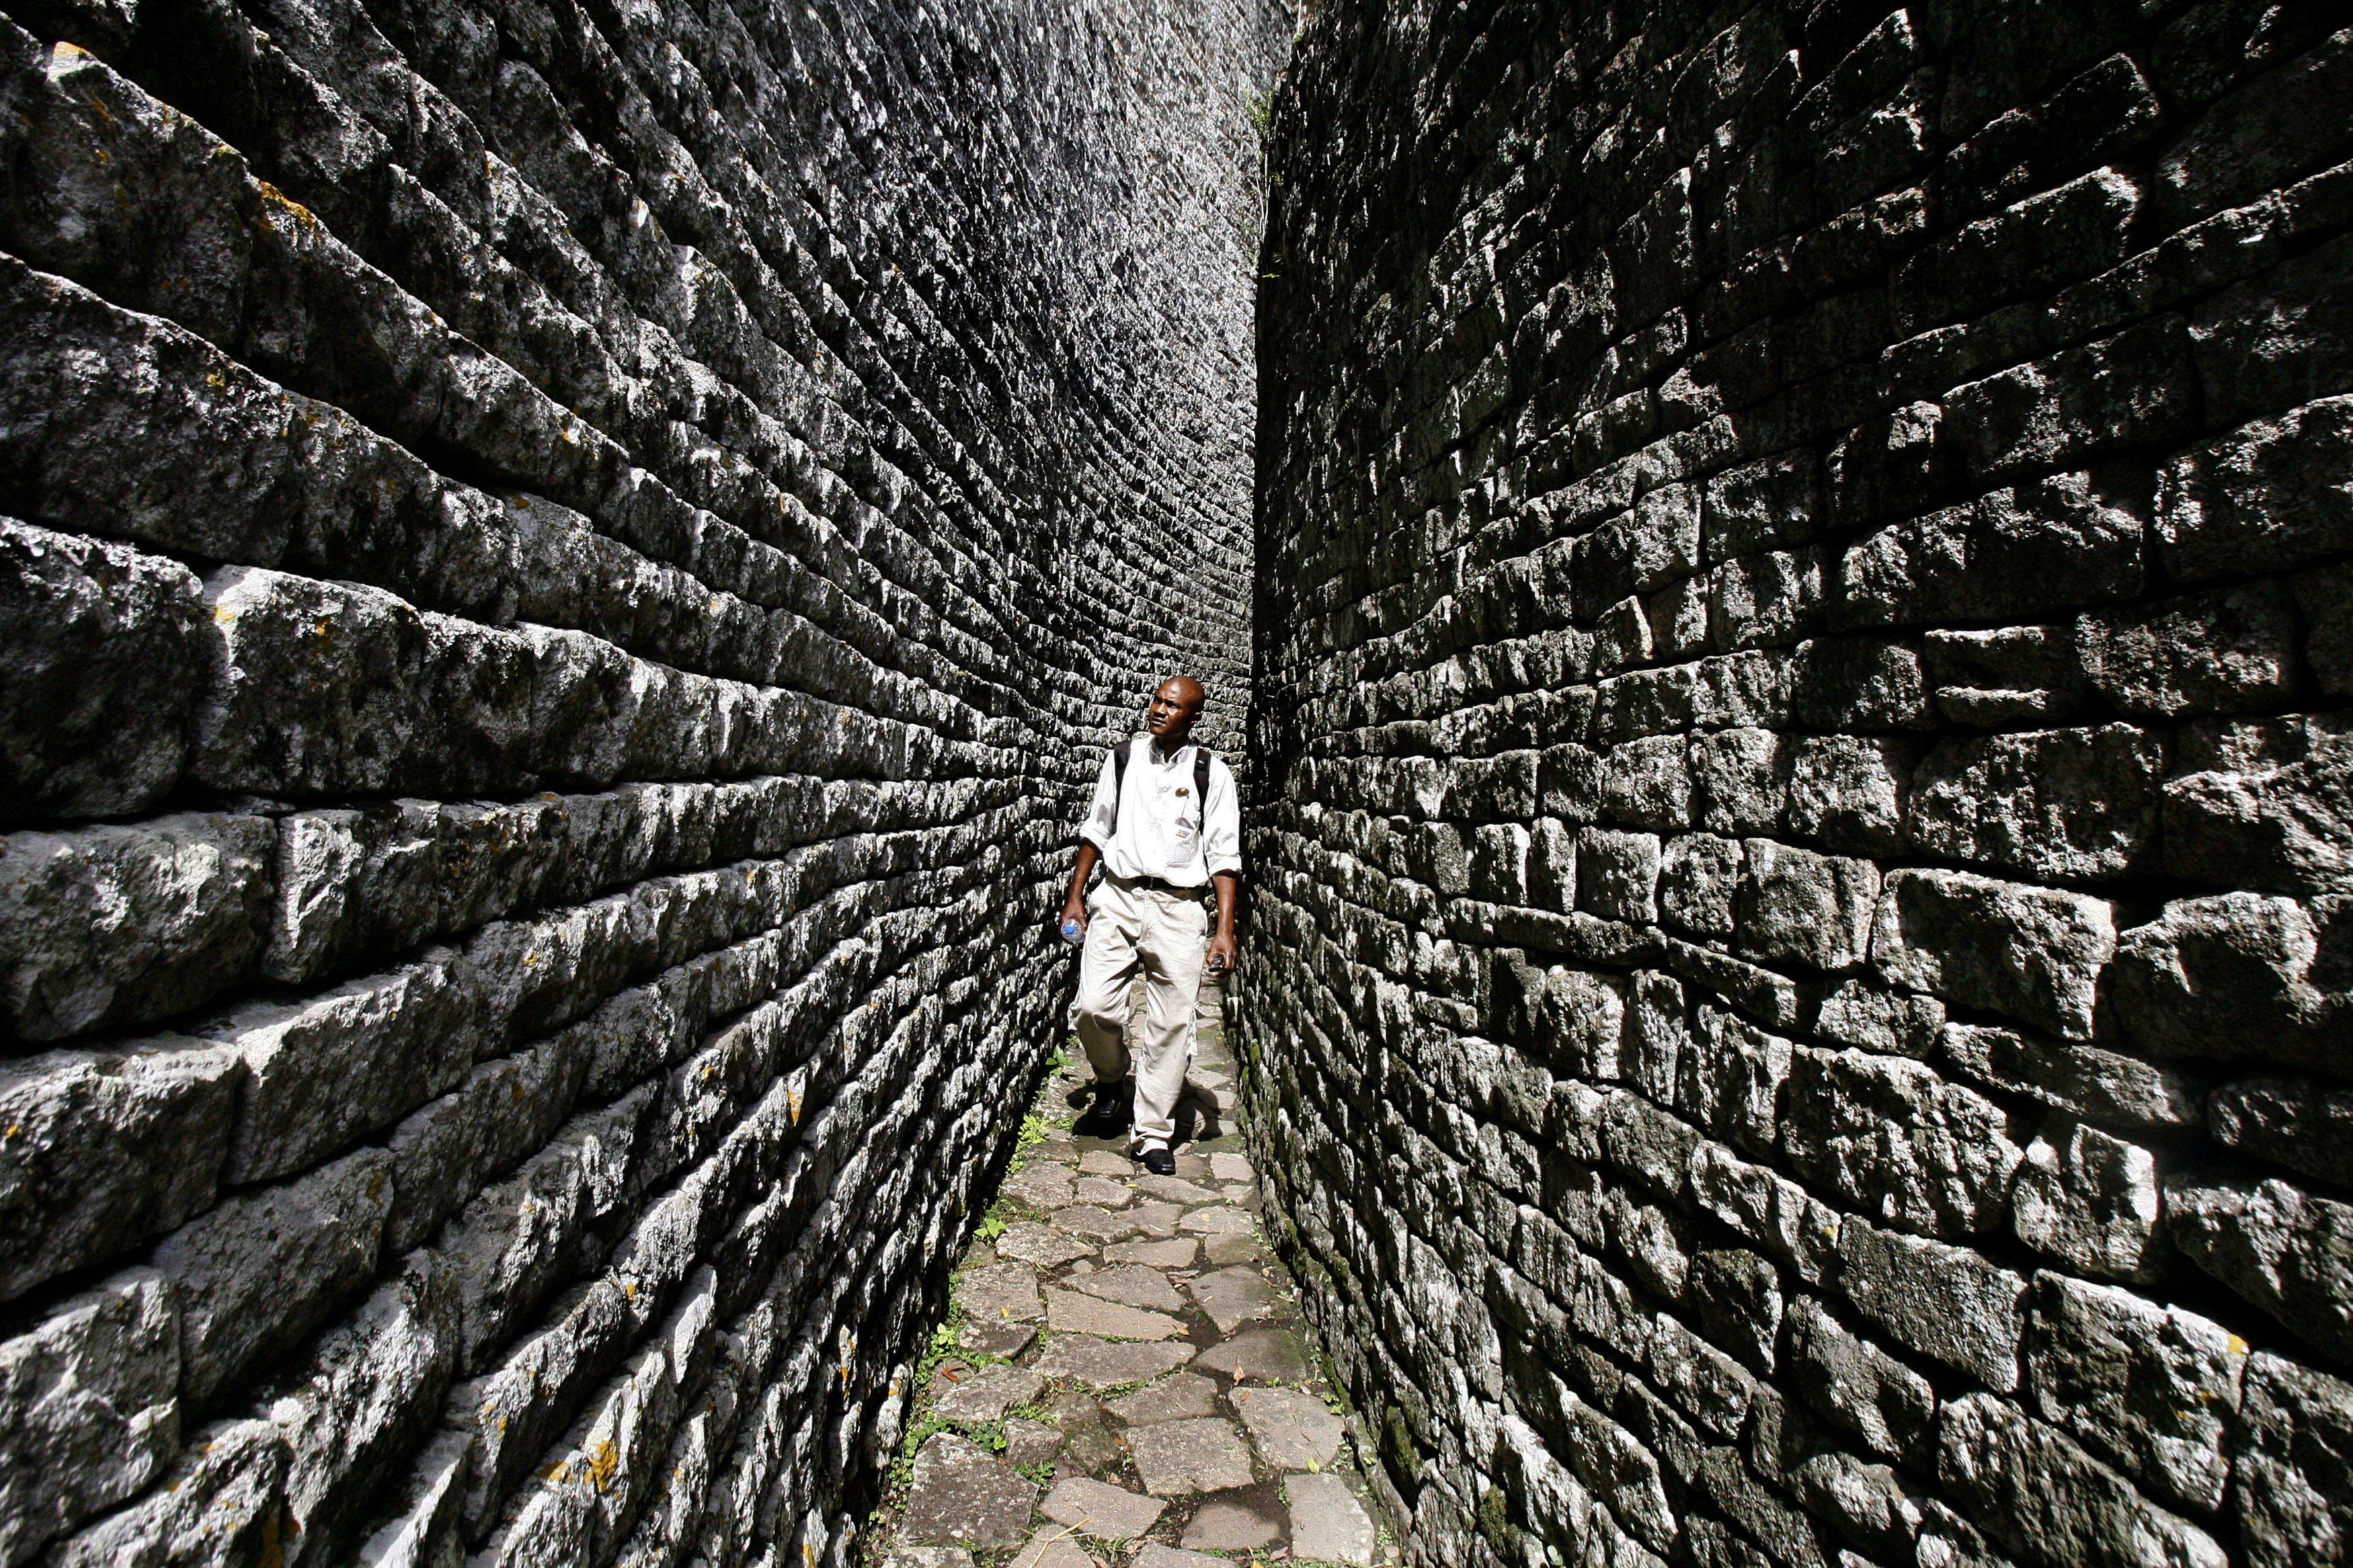 900-year-old stone kingdom: The breathtaking ruins of Great